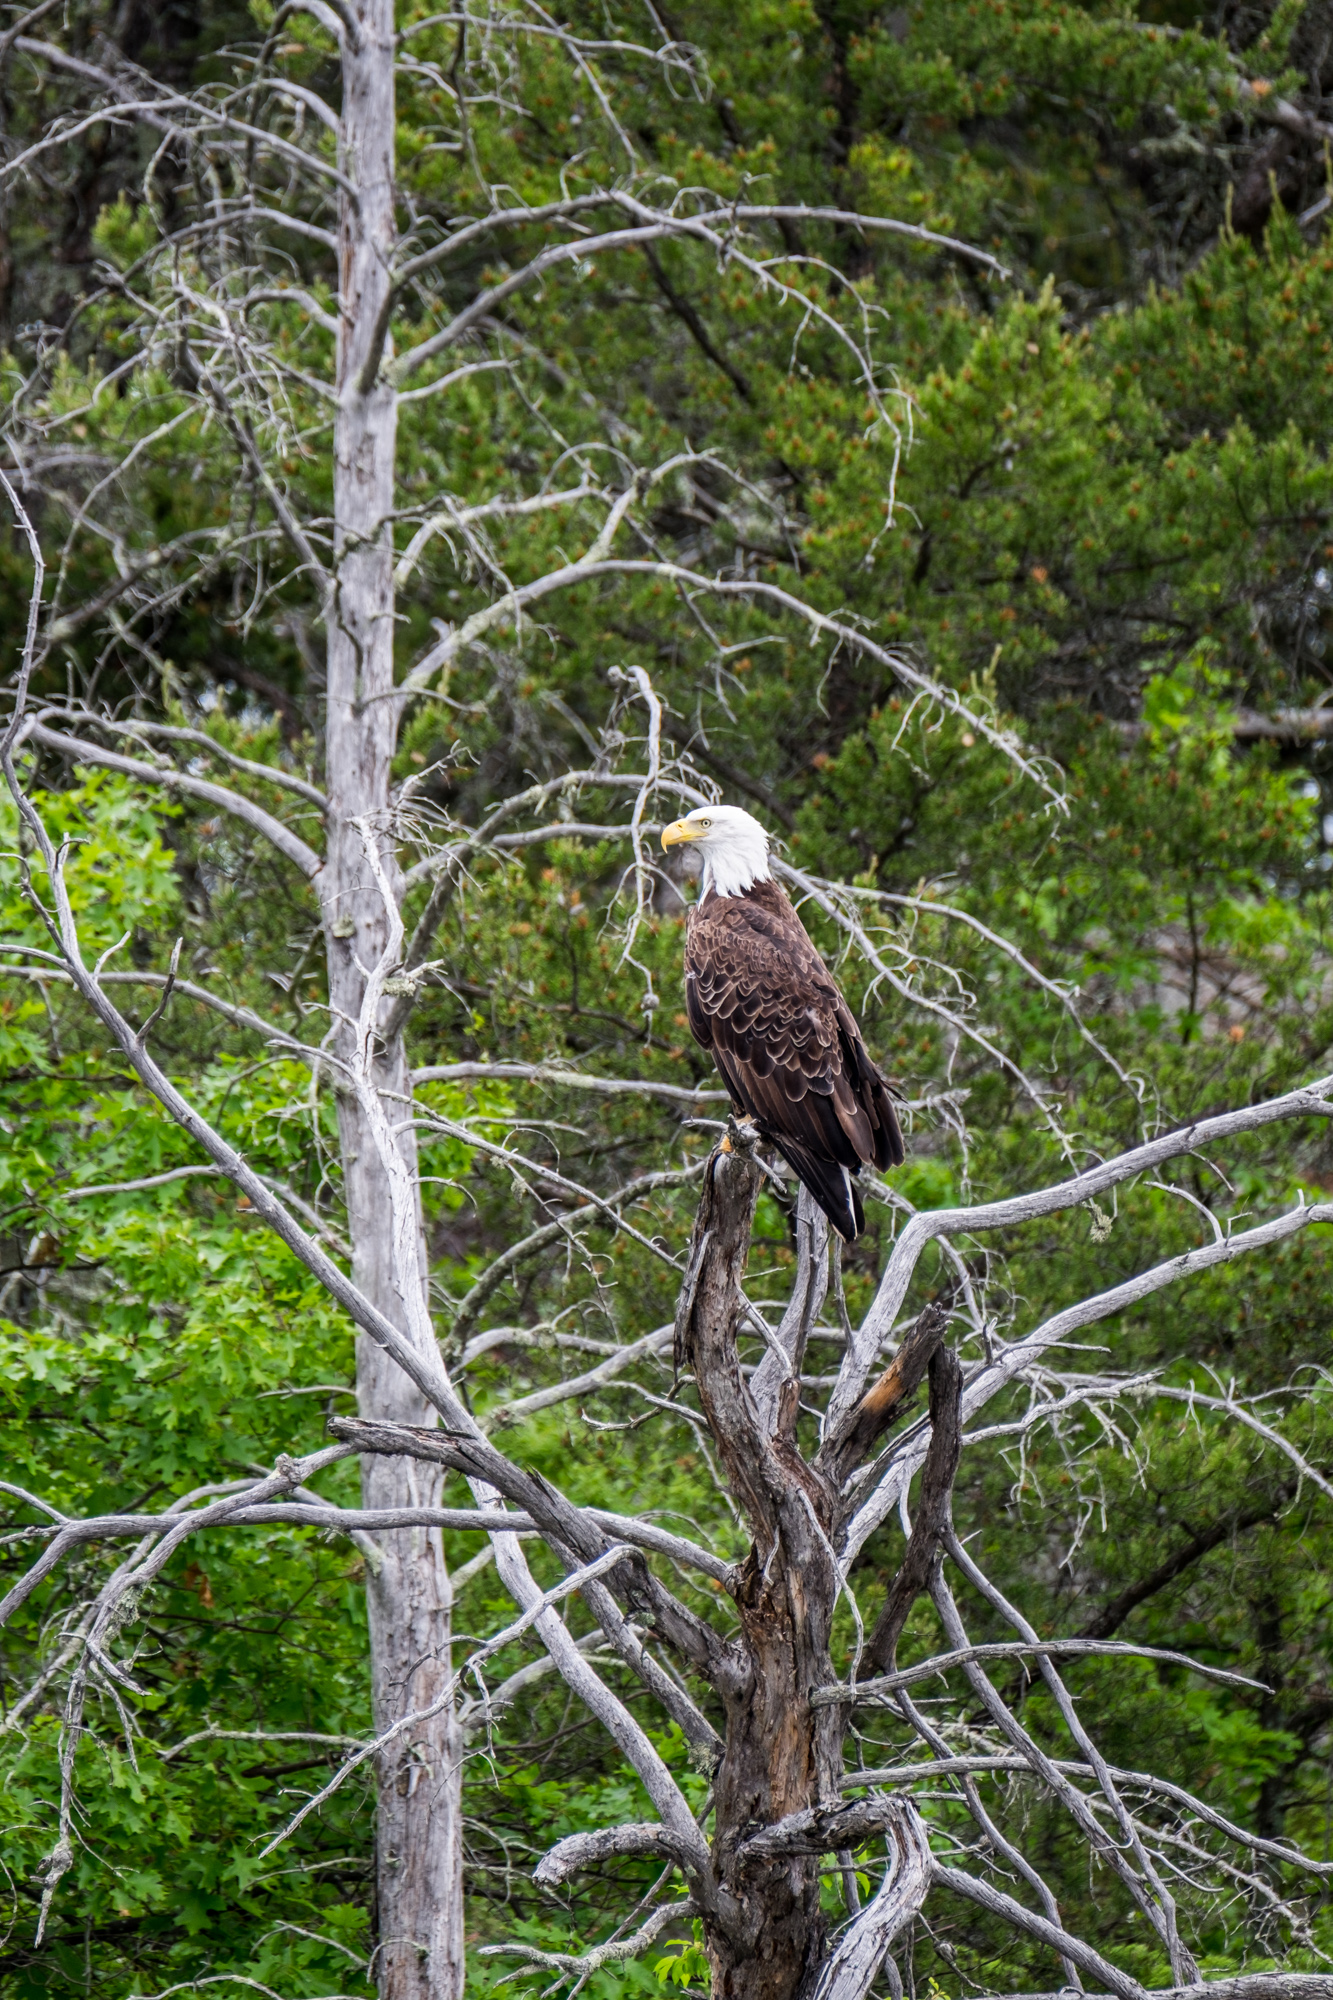 Bald Eagles are a common sight in this park.